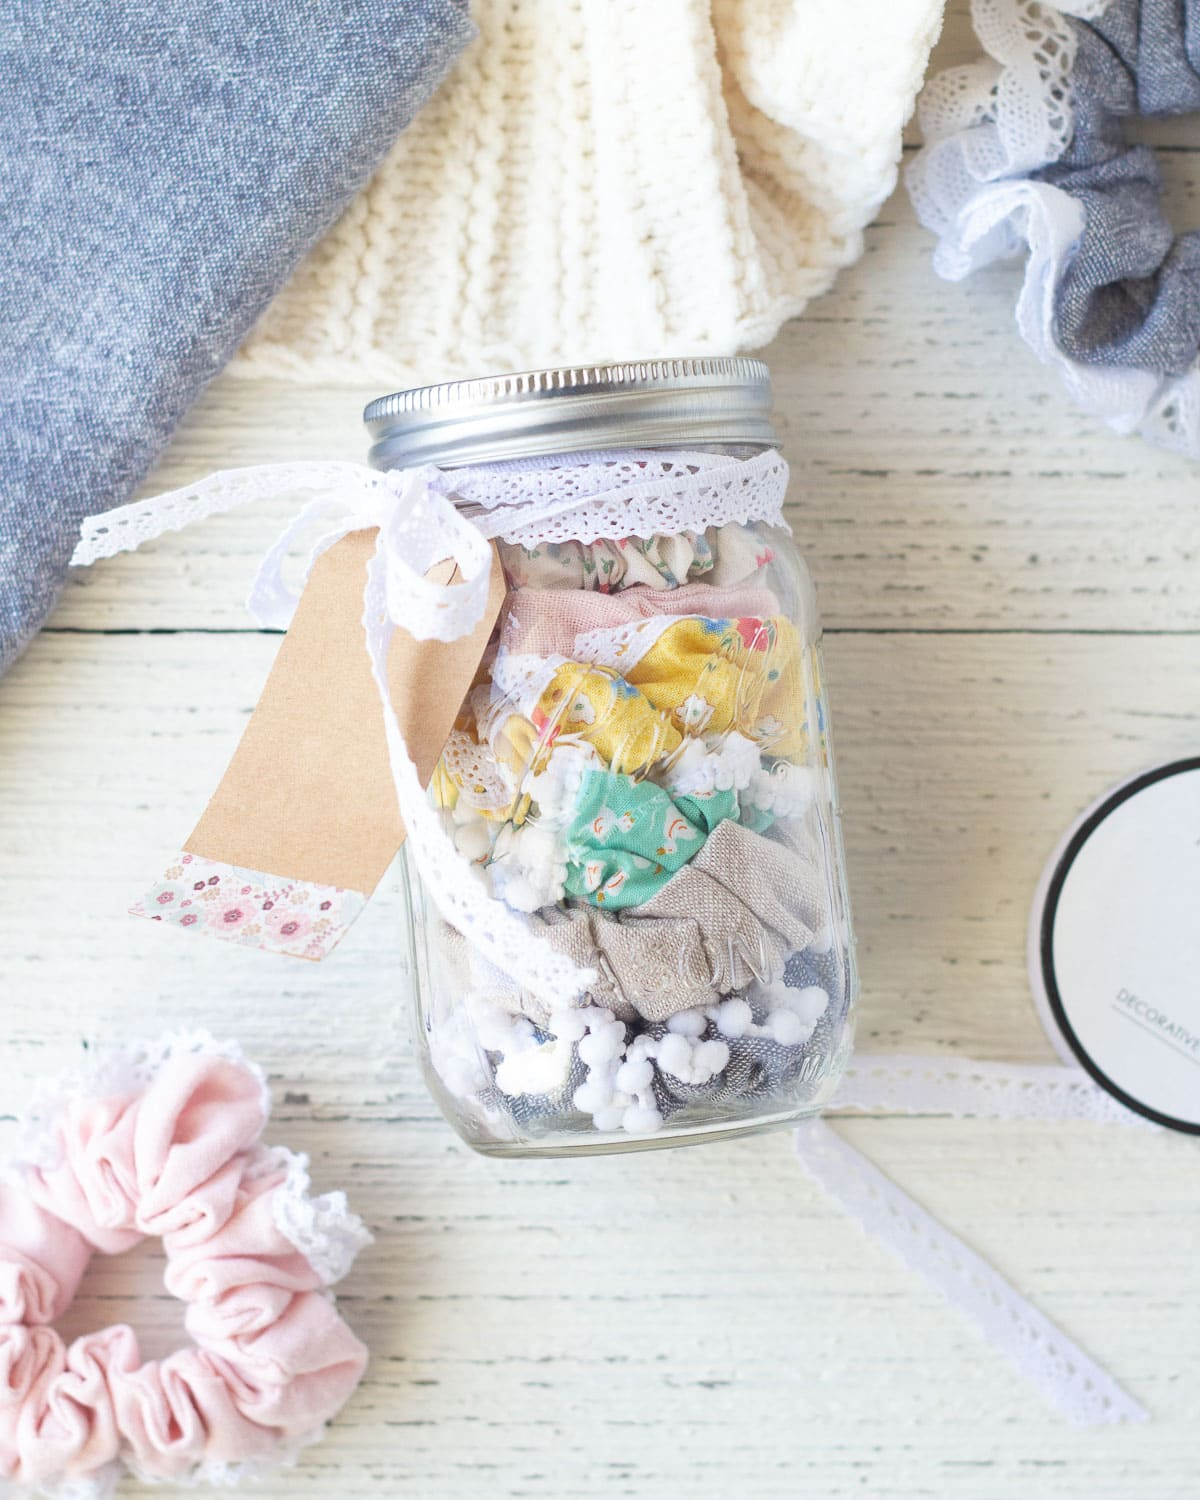 A mason jar filled with scrunchies on a wooden background.